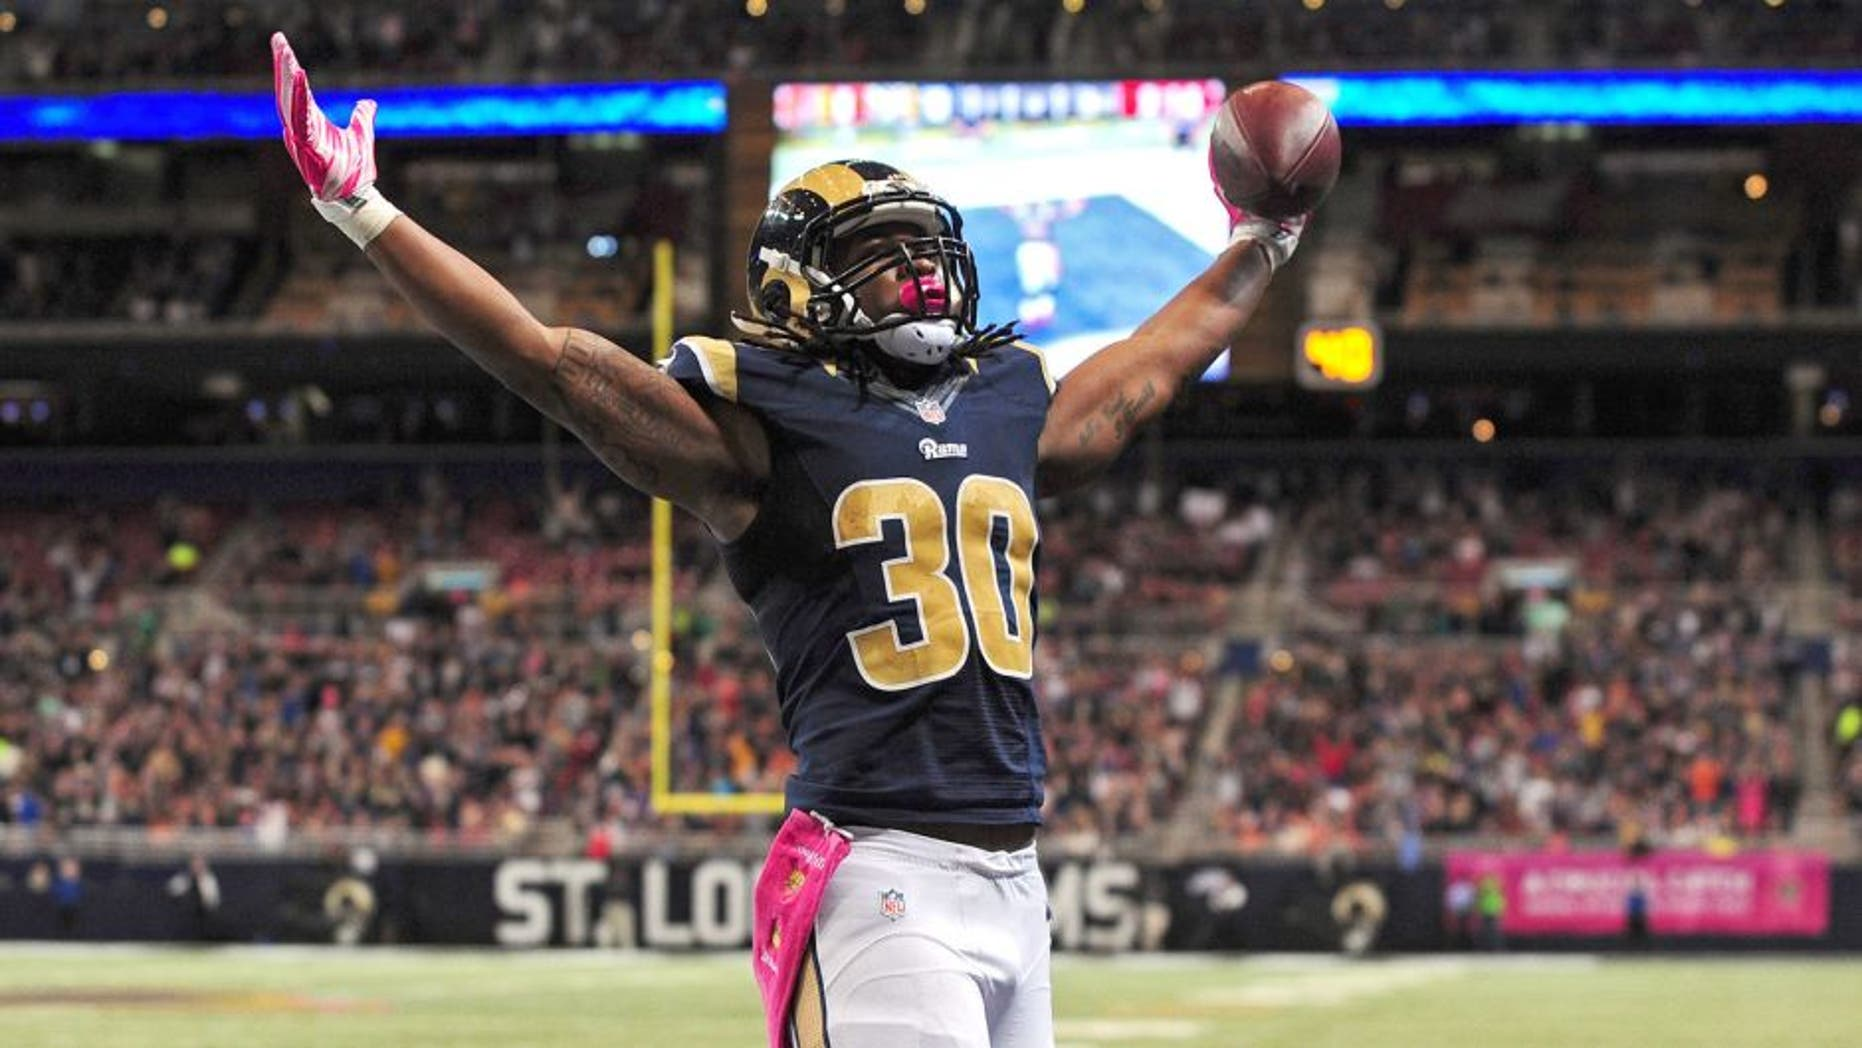 Oct 25, 2015; St. Louis, MO, USA; St. Louis Rams running back Todd Gurley (30) celebrates after scoring a one yard touchdown against the Cleveland Browns during the second half at the Edward Jones Dome. St. Louis defeated Cleveland 24-6. Mandatory Credit: Jeff Curry-USA TODAY Sports